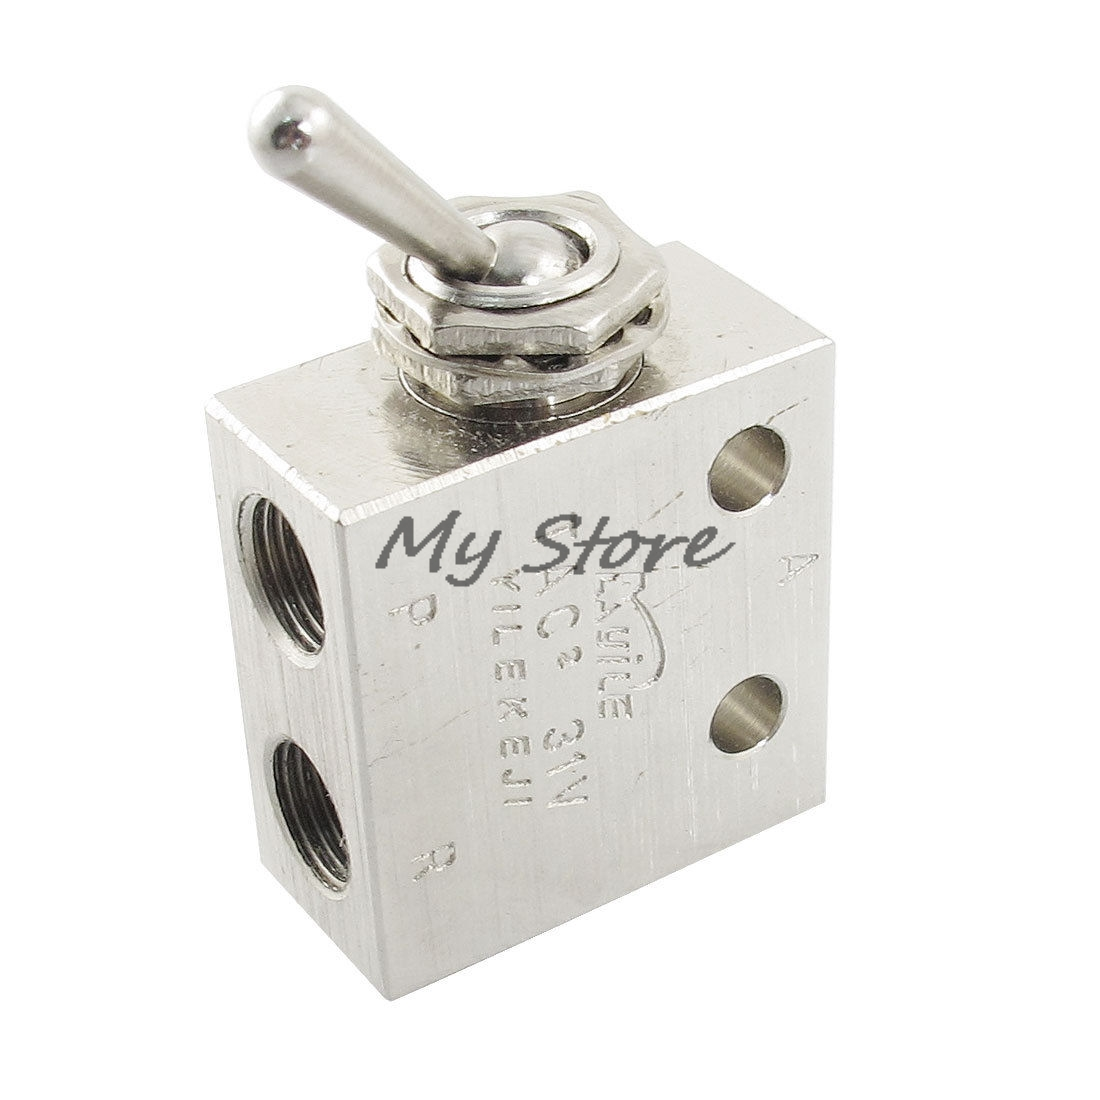 1/8PT Thread 2 Position 3 Way Rectangle Mechanical Air Pneumatic switch Valve TAC2-31V tv 3s pneumatic toggle valve 5mm thread 2 position 3 way mechanical air pneumatic valve